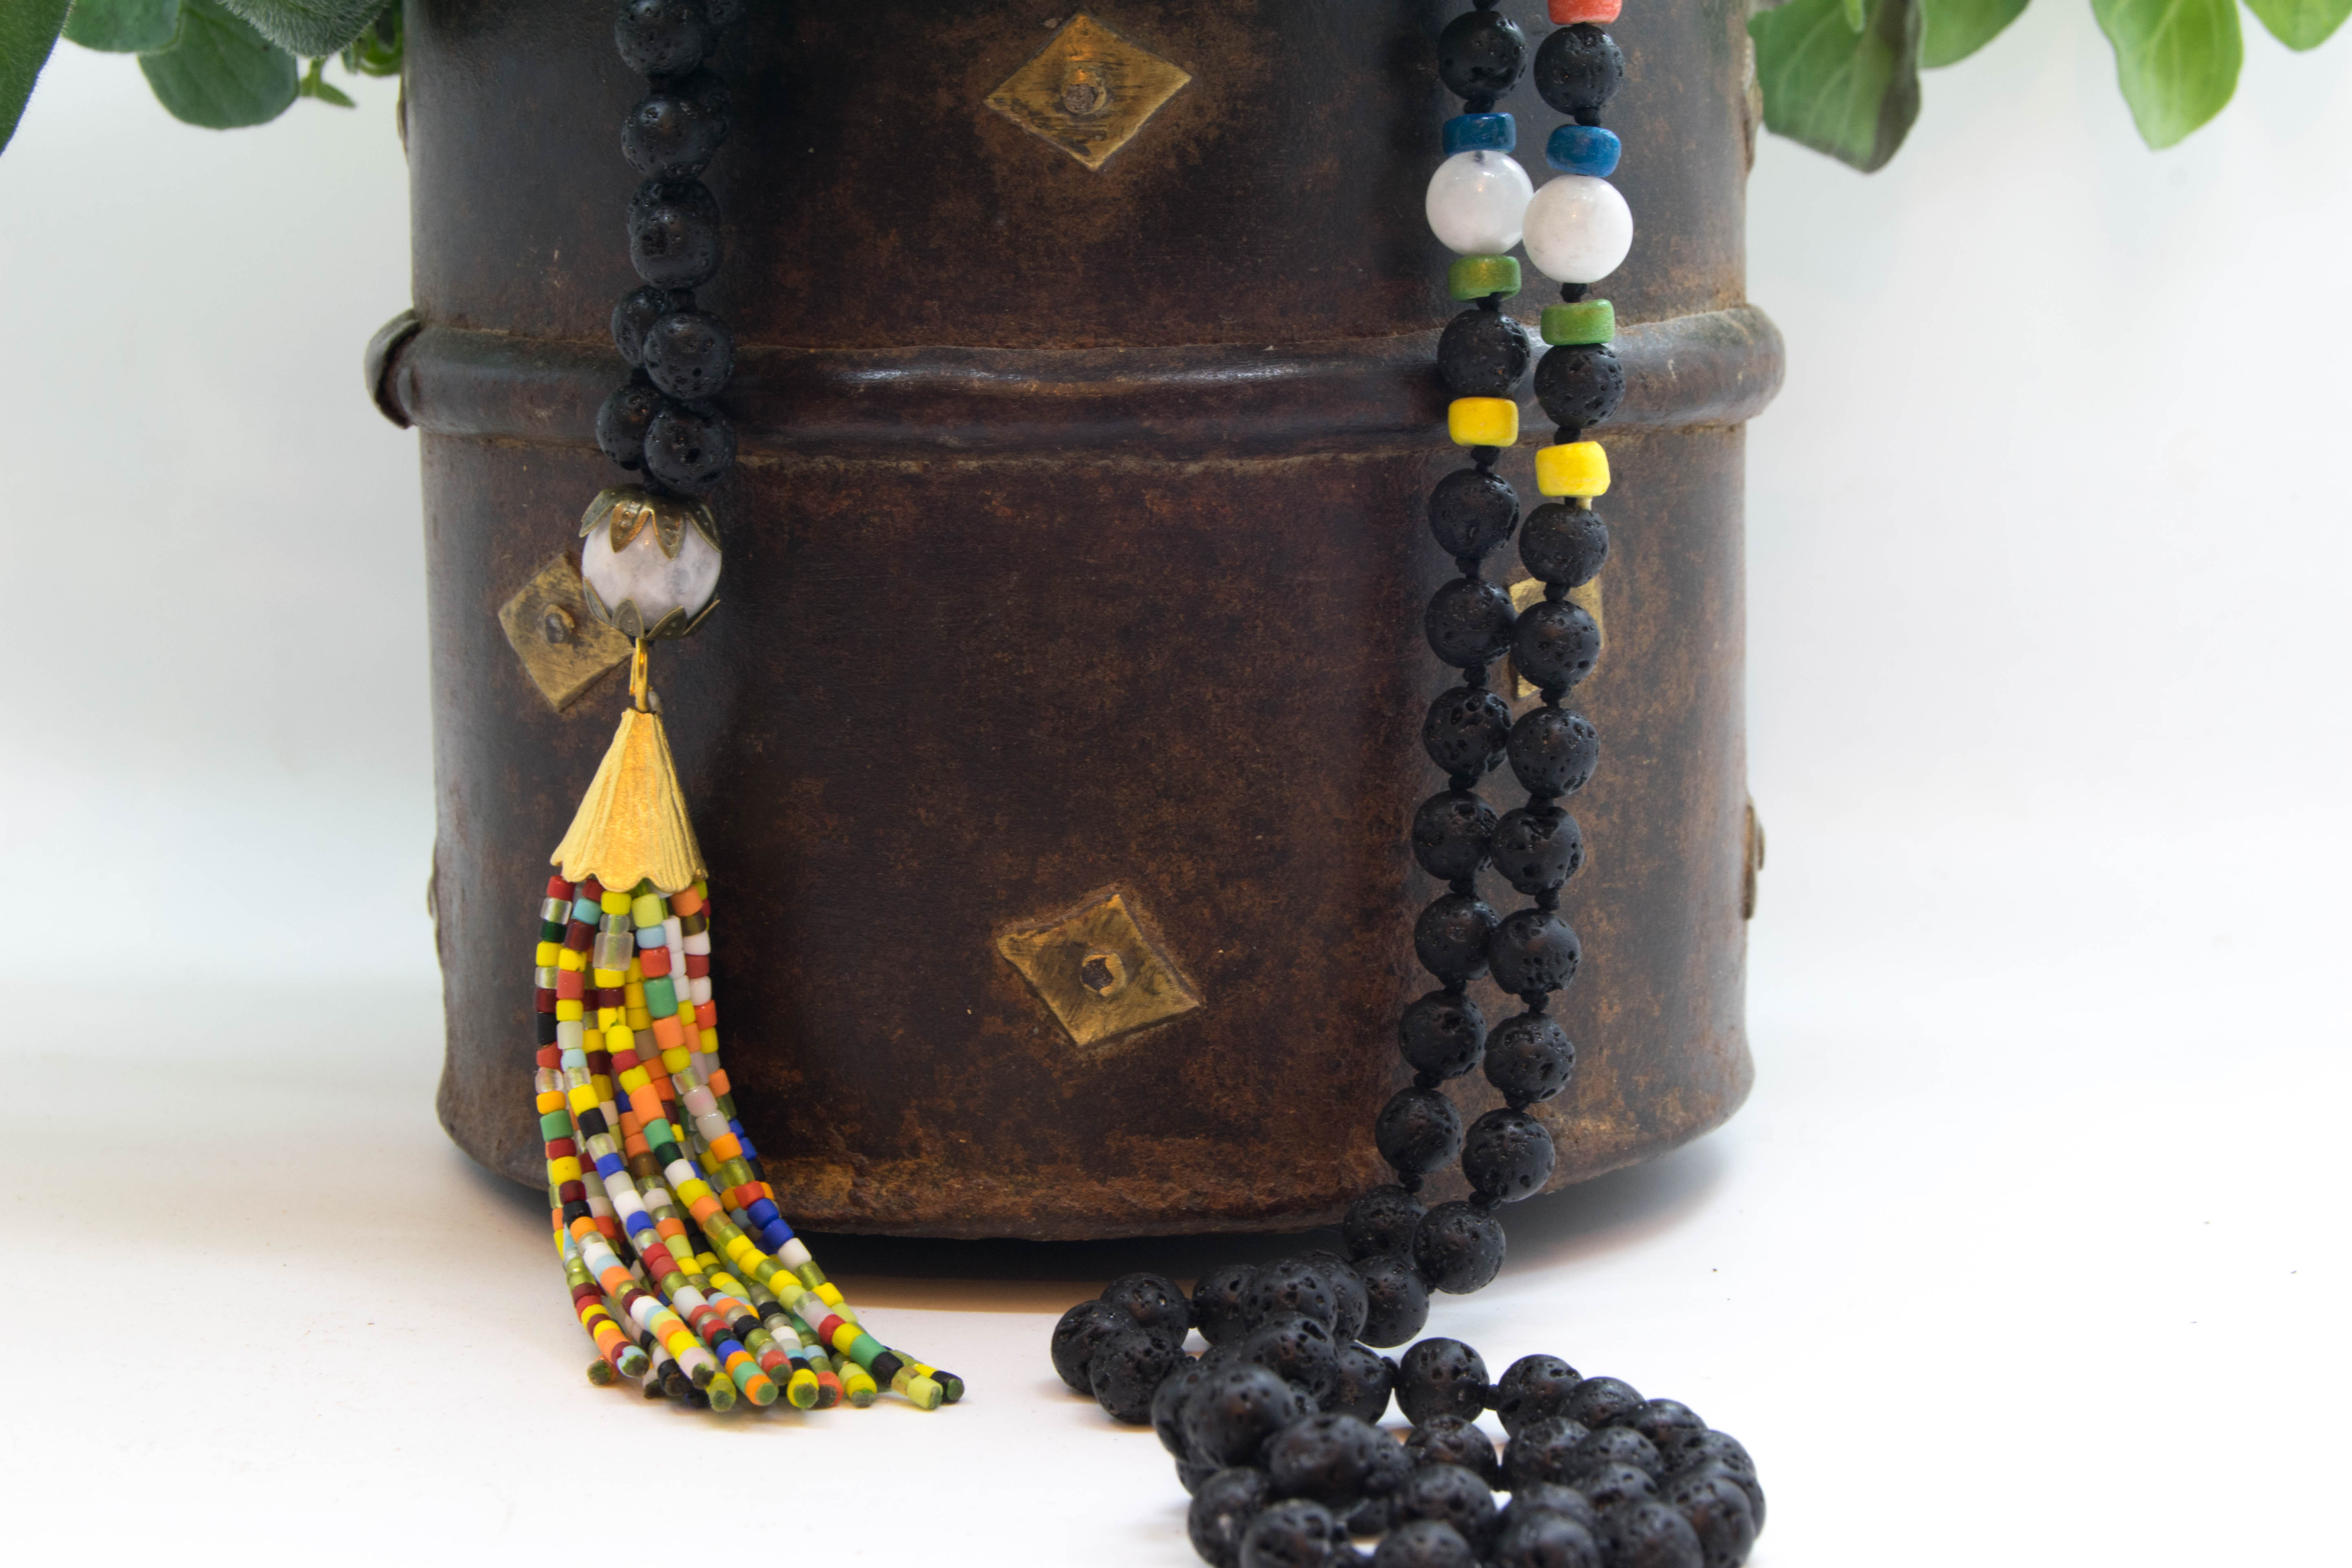 Marley Mala Born Of The Strawberry Full Moon, Moonstone & Lava Rock